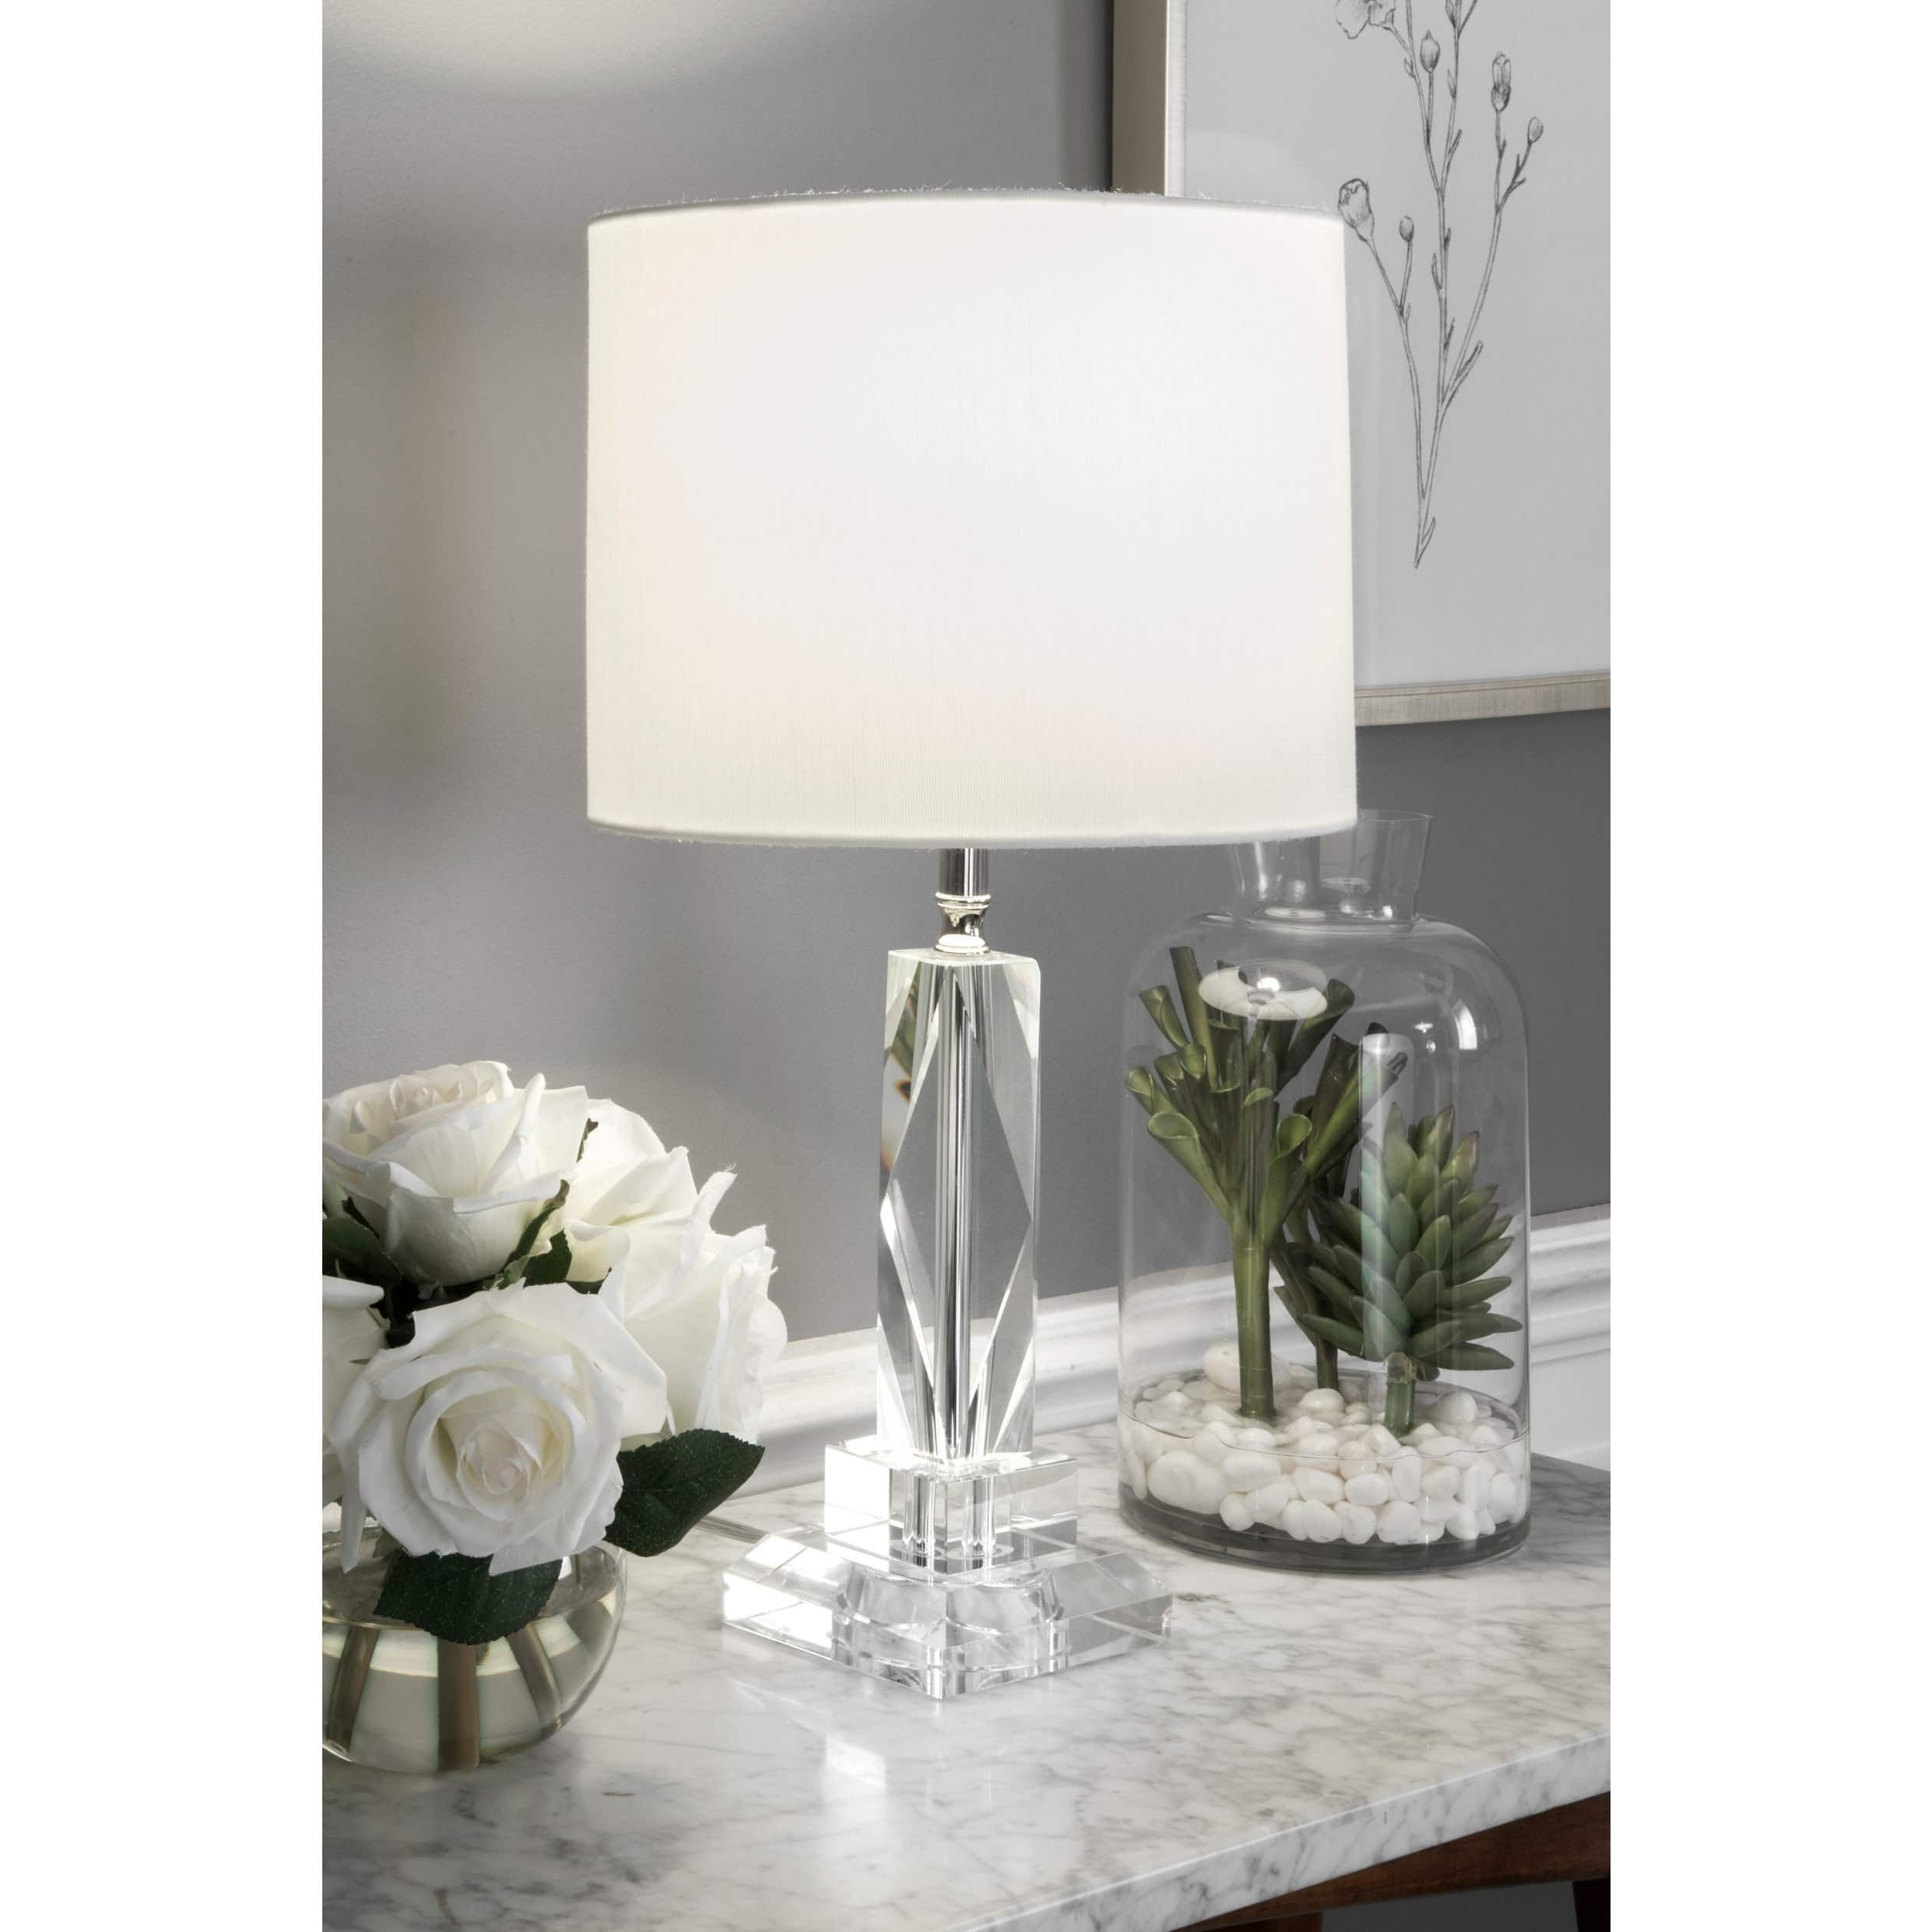 Living Room Table Reading Lamps Throughout 2018 Desk Table Reading Lamp White Light Book Bedroom Living Room Home (View 3 of 20)